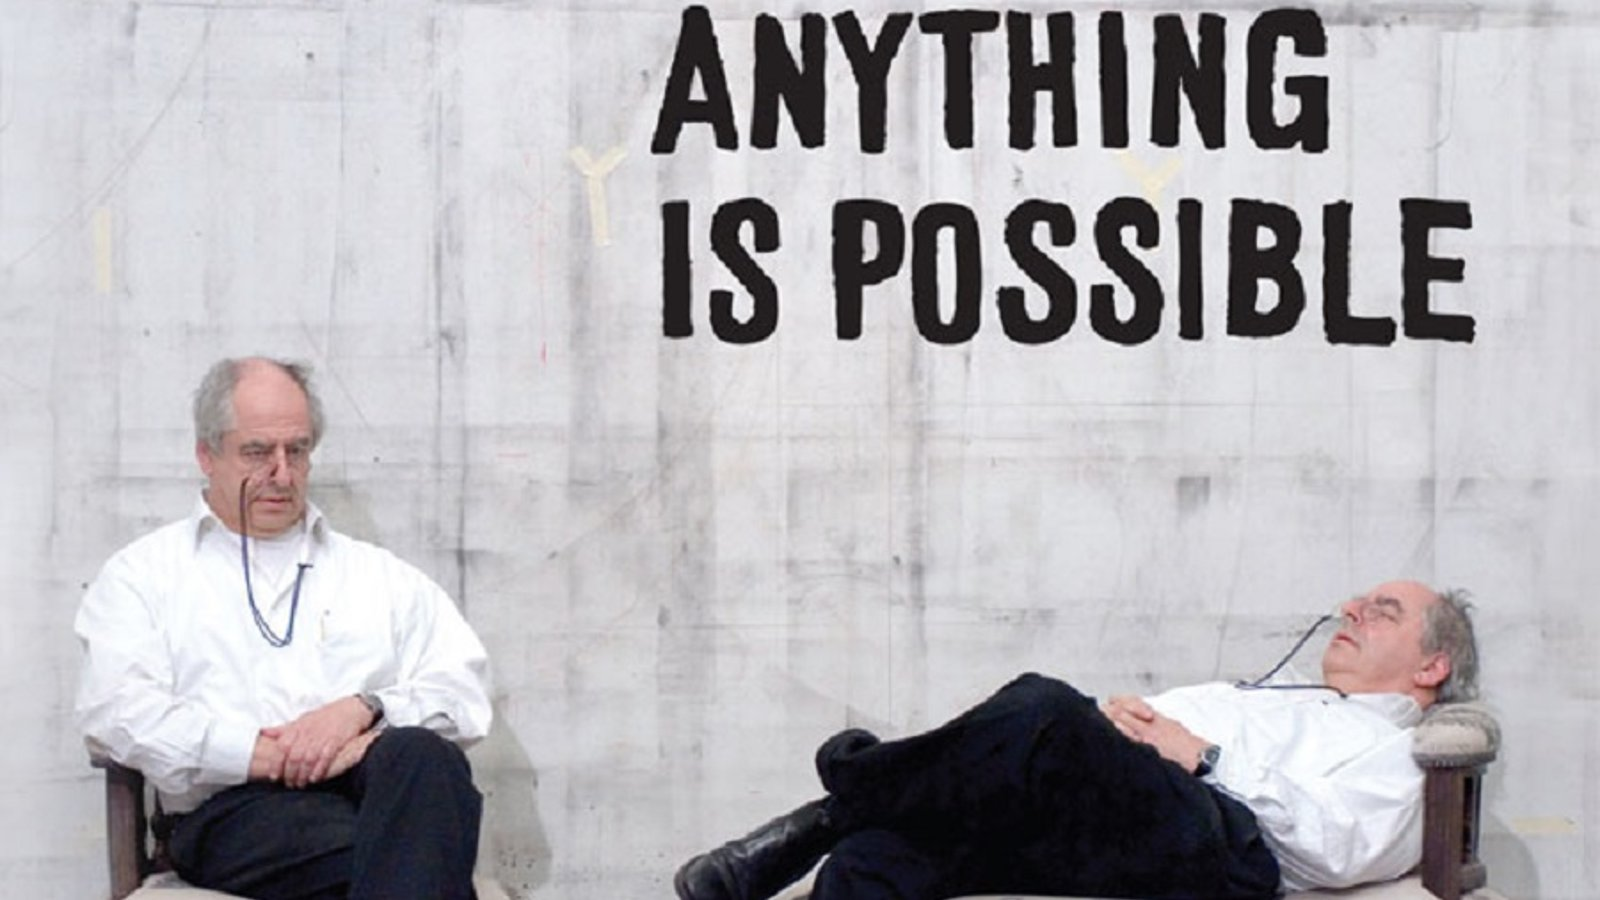 William Kentridge: Anything is Possible - A South African Artist